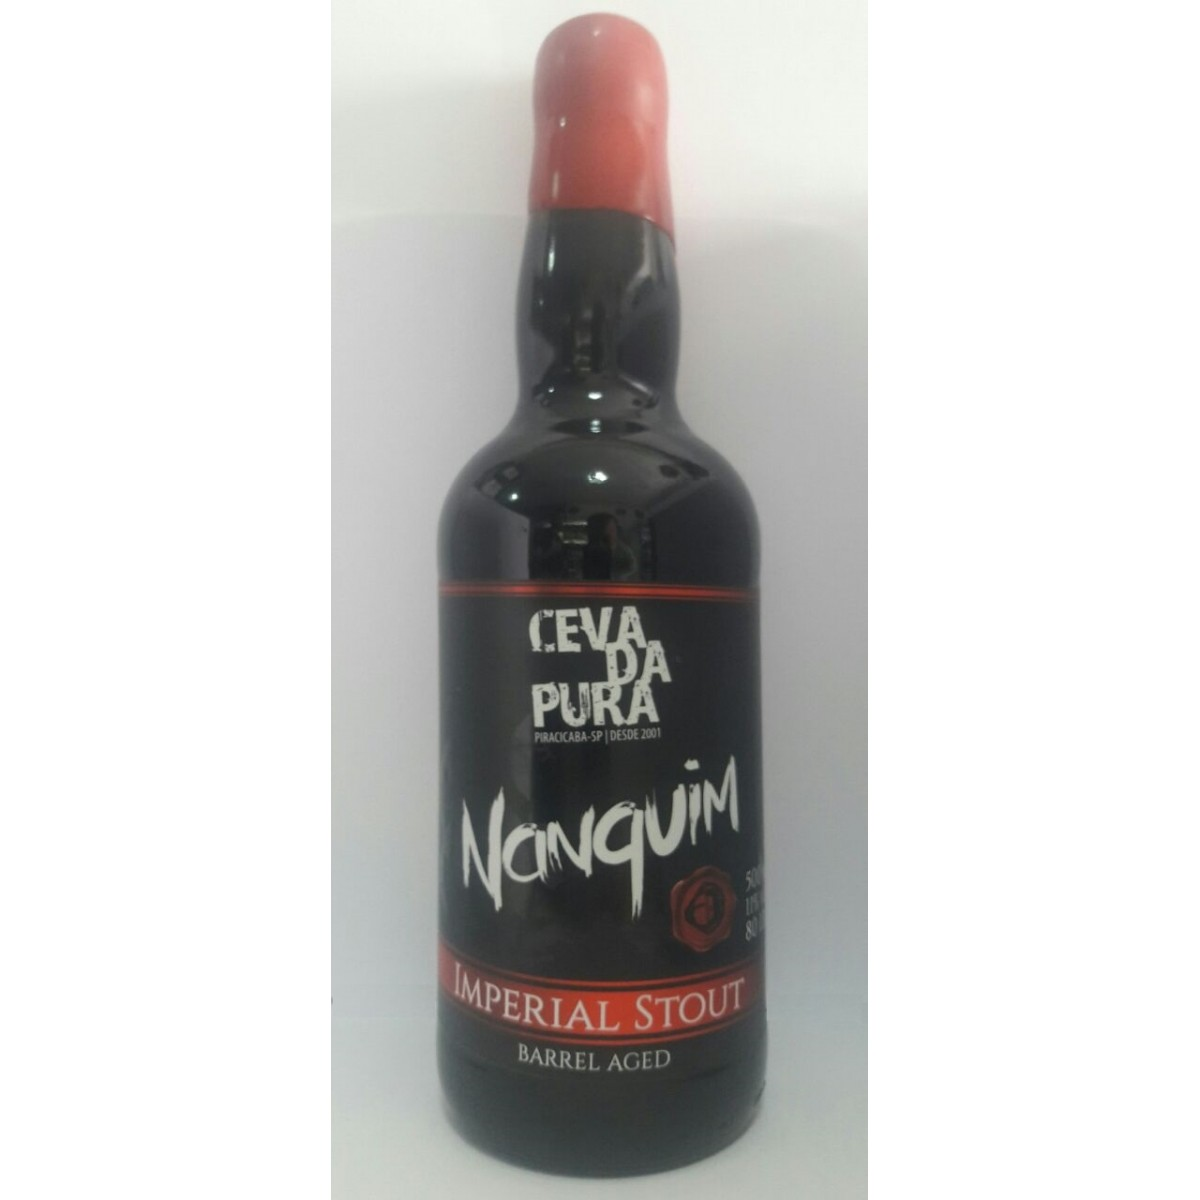 Cevada Pura Nanquim 500ml Imperial Stout Barrel Aged